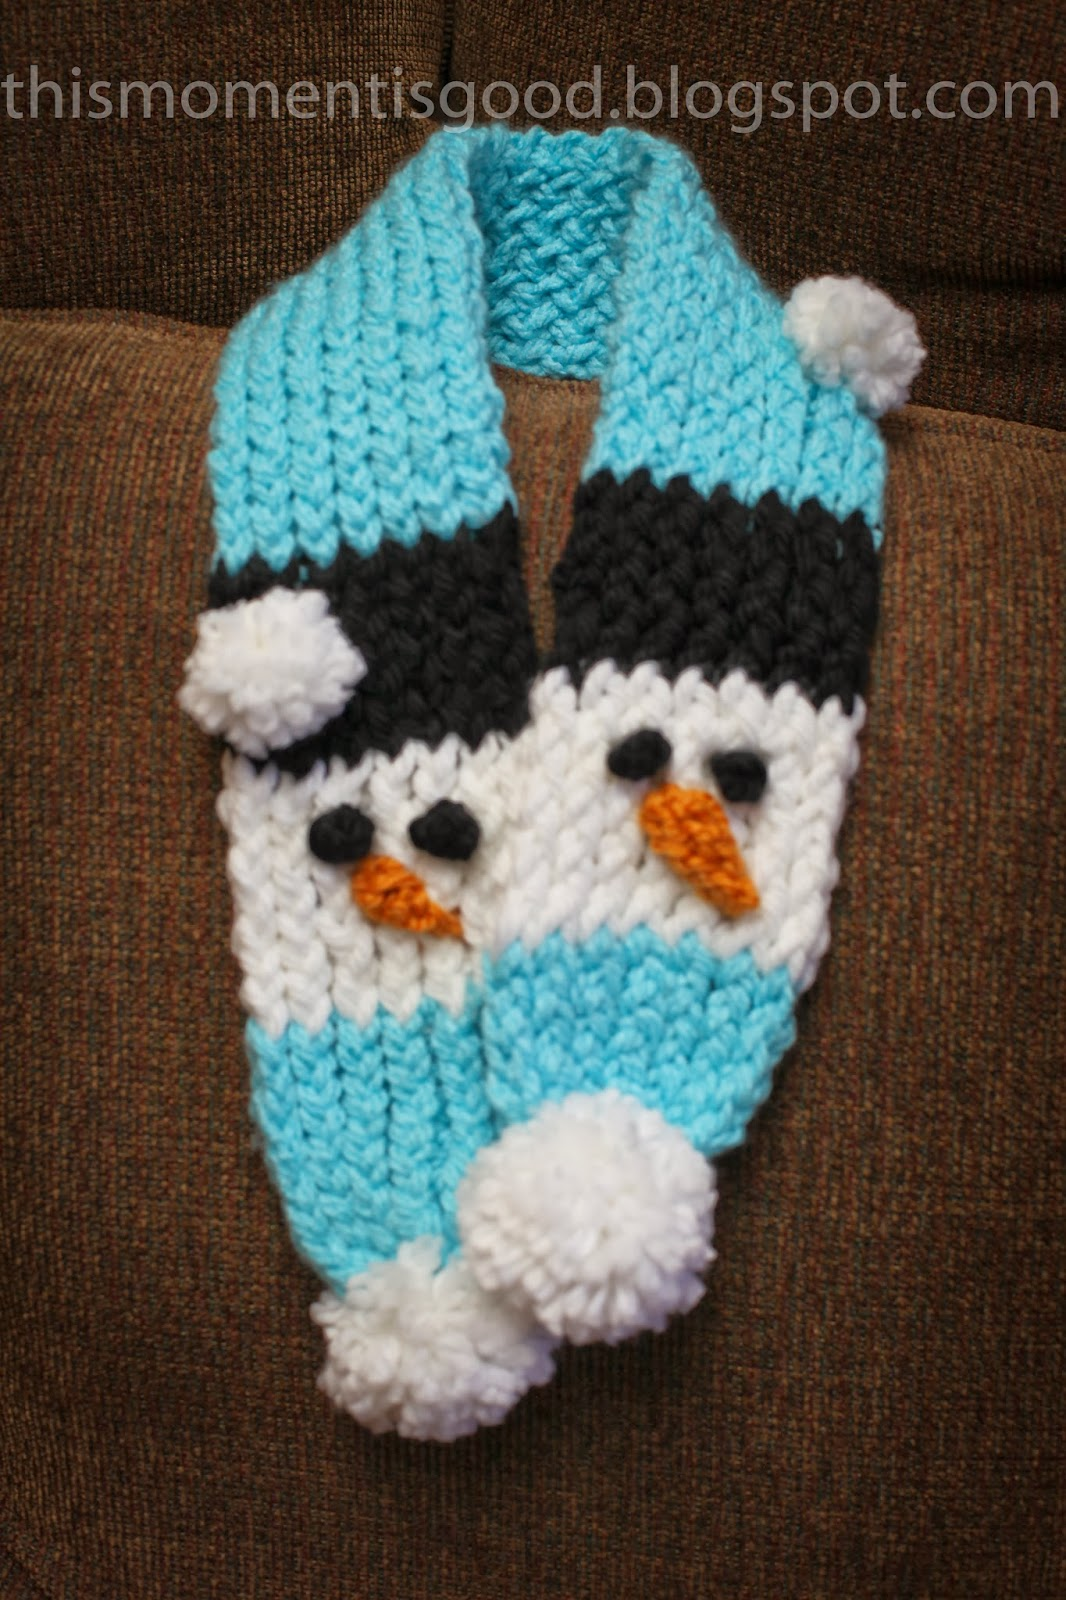 Loom Knit Snowman Scarf Loom Knitting By This Moment Is Good